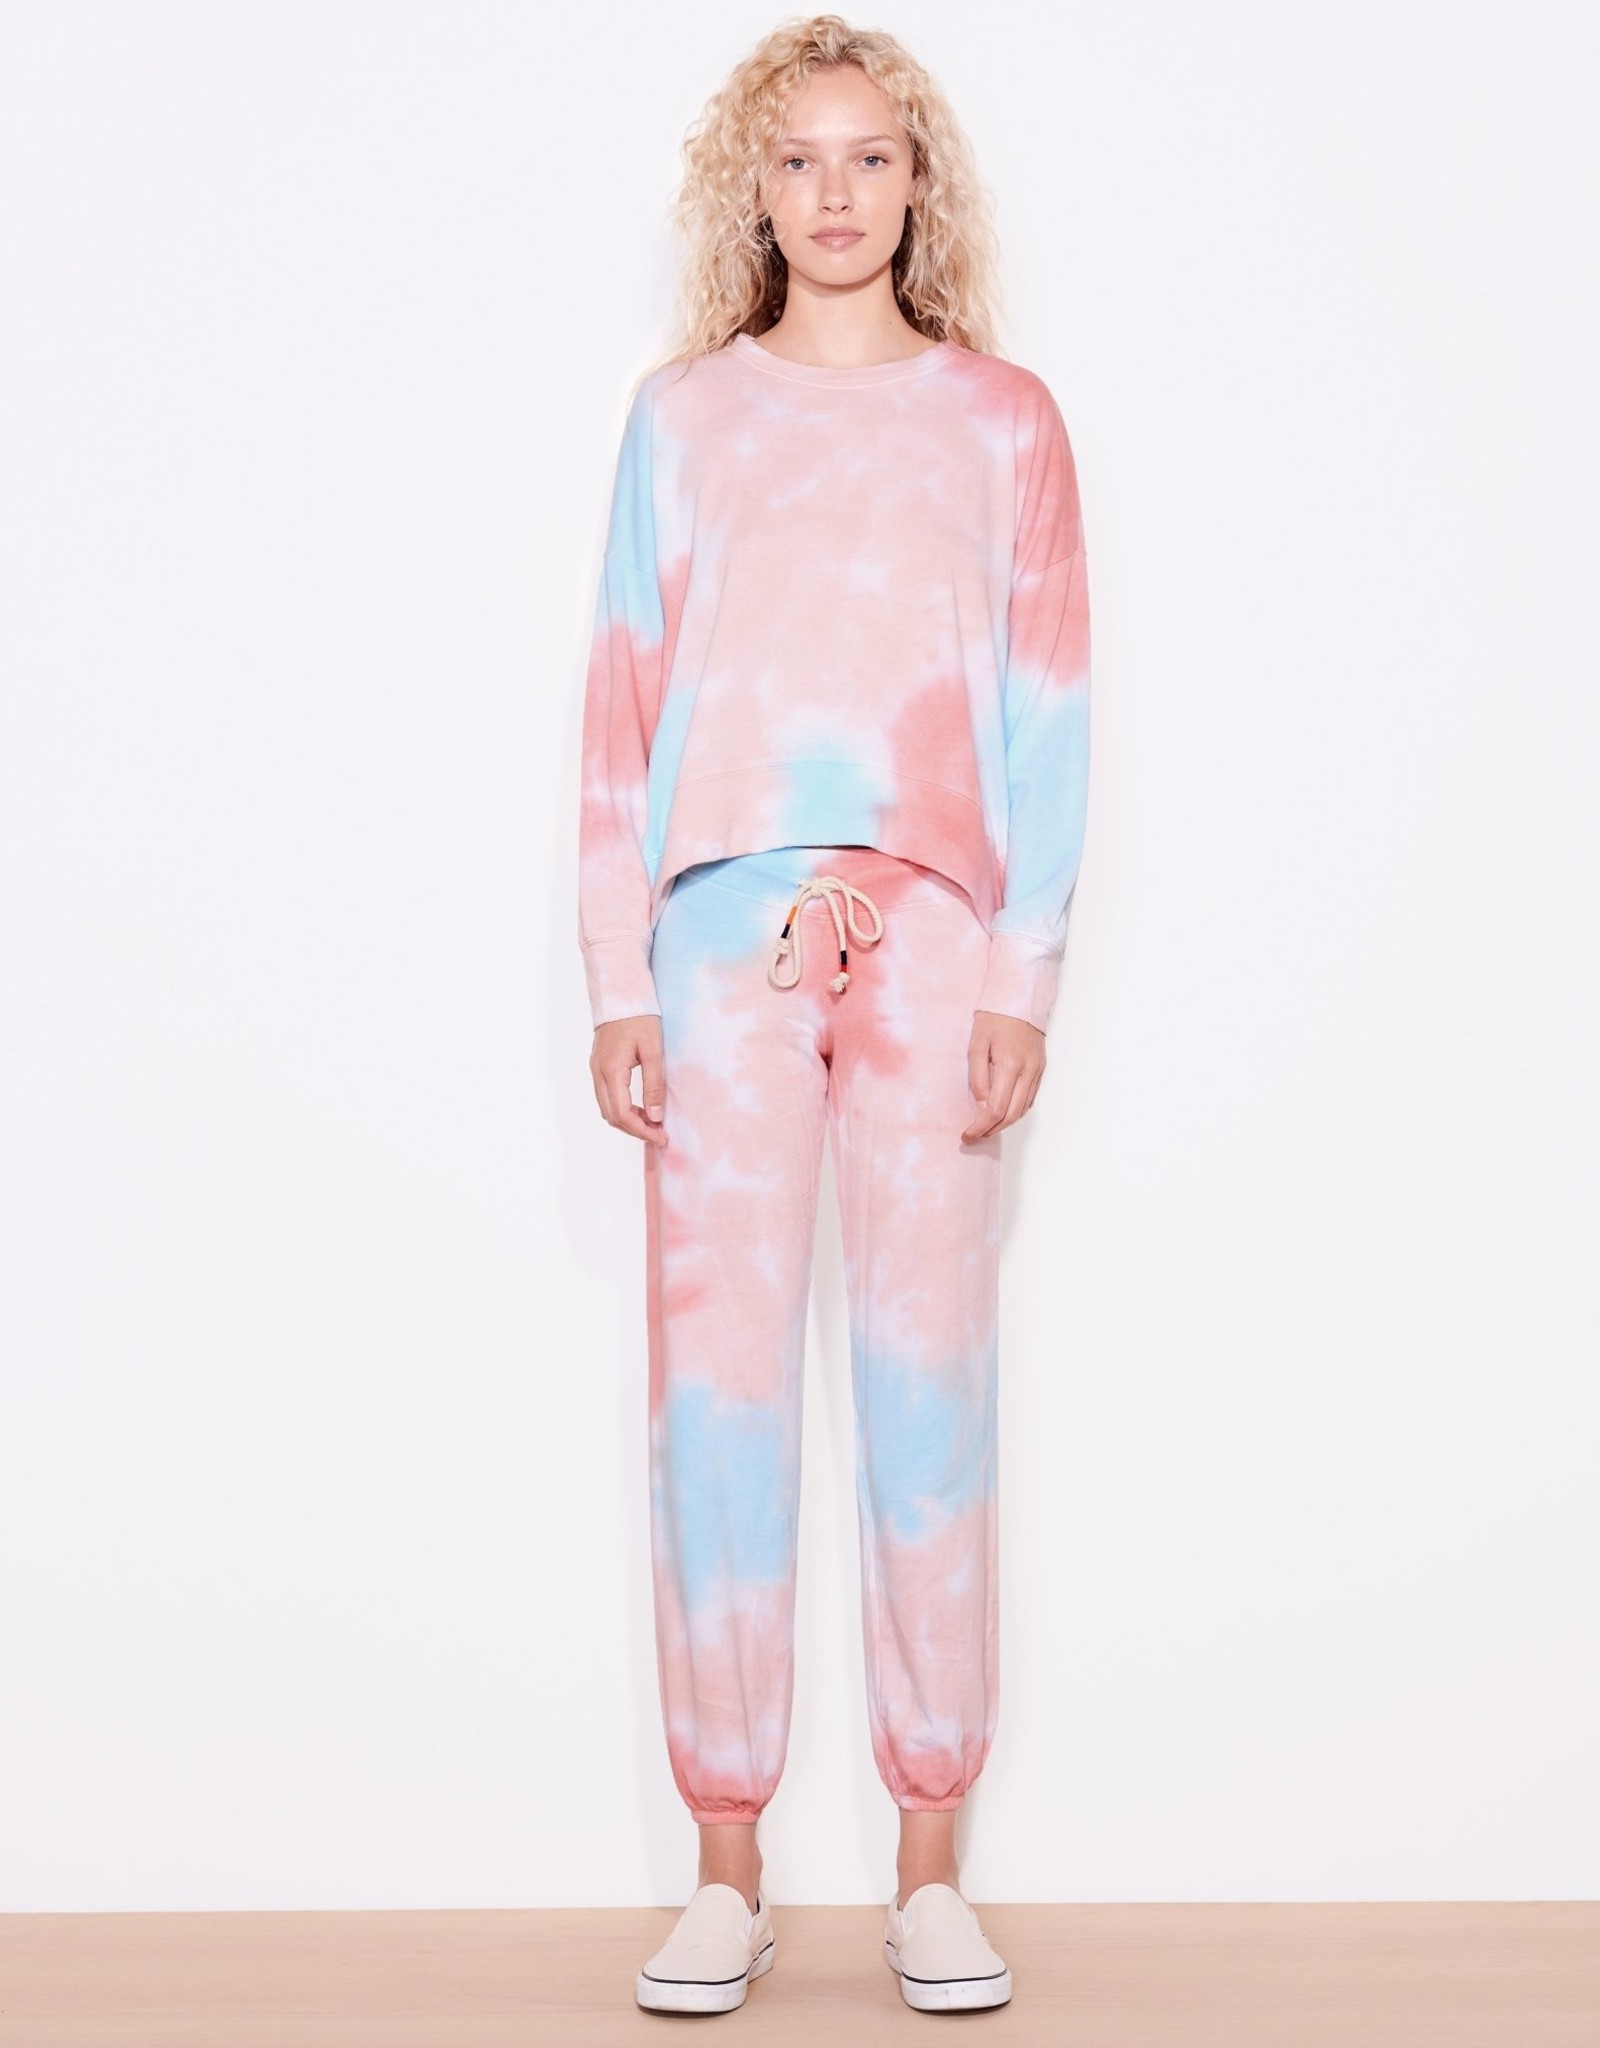 Sundry Sundry Multicolor Tie Dye Sweatpants